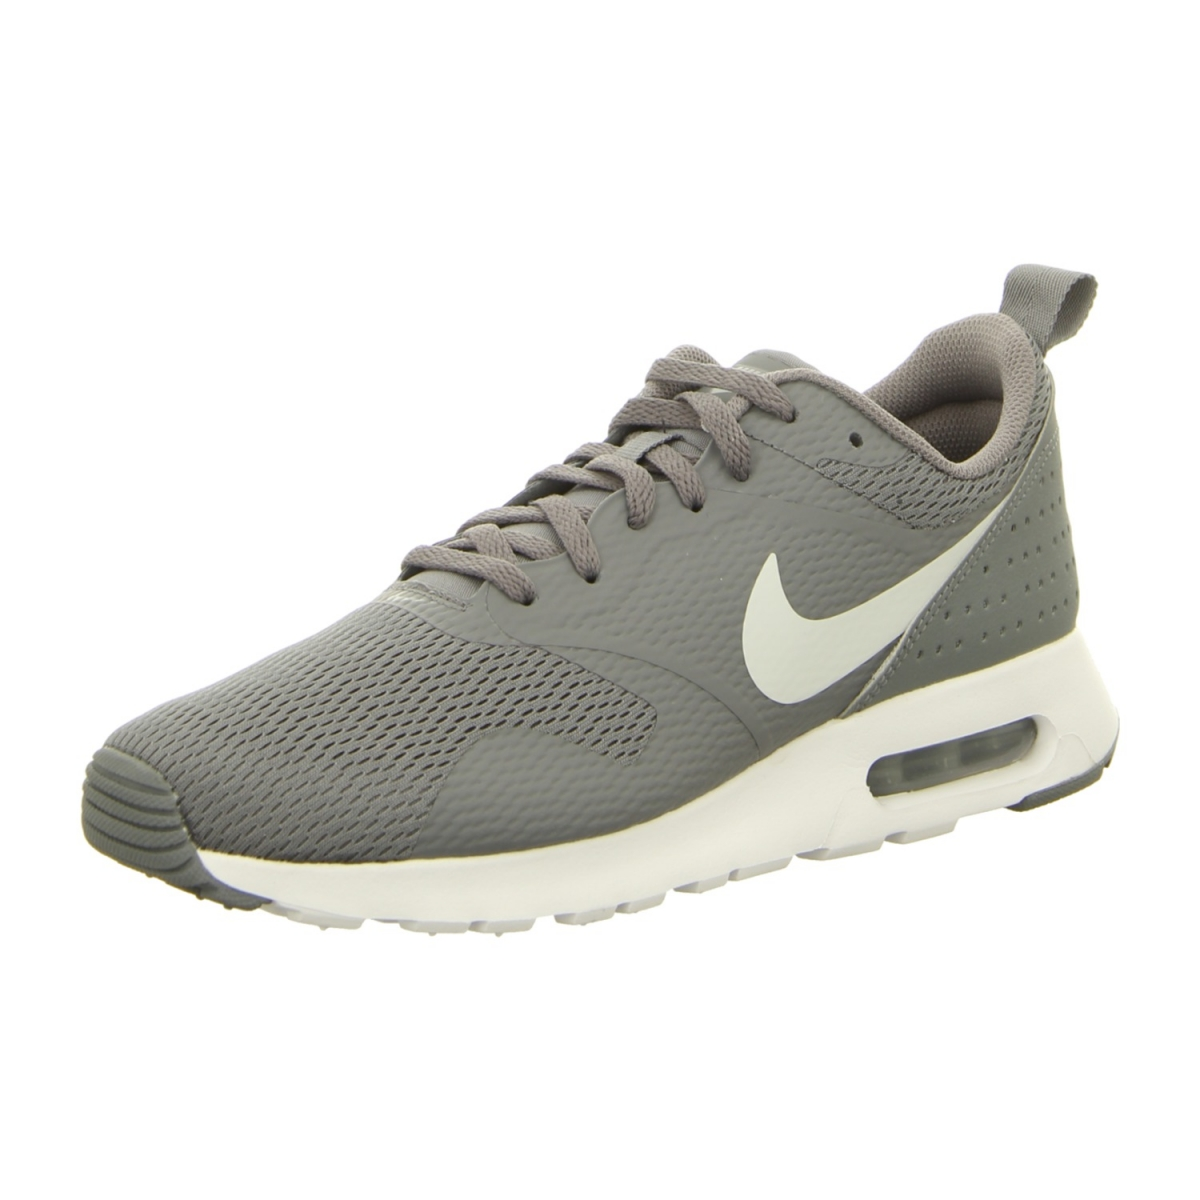 nike air max tavas sneaker. Black Bedroom Furniture Sets. Home Design Ideas